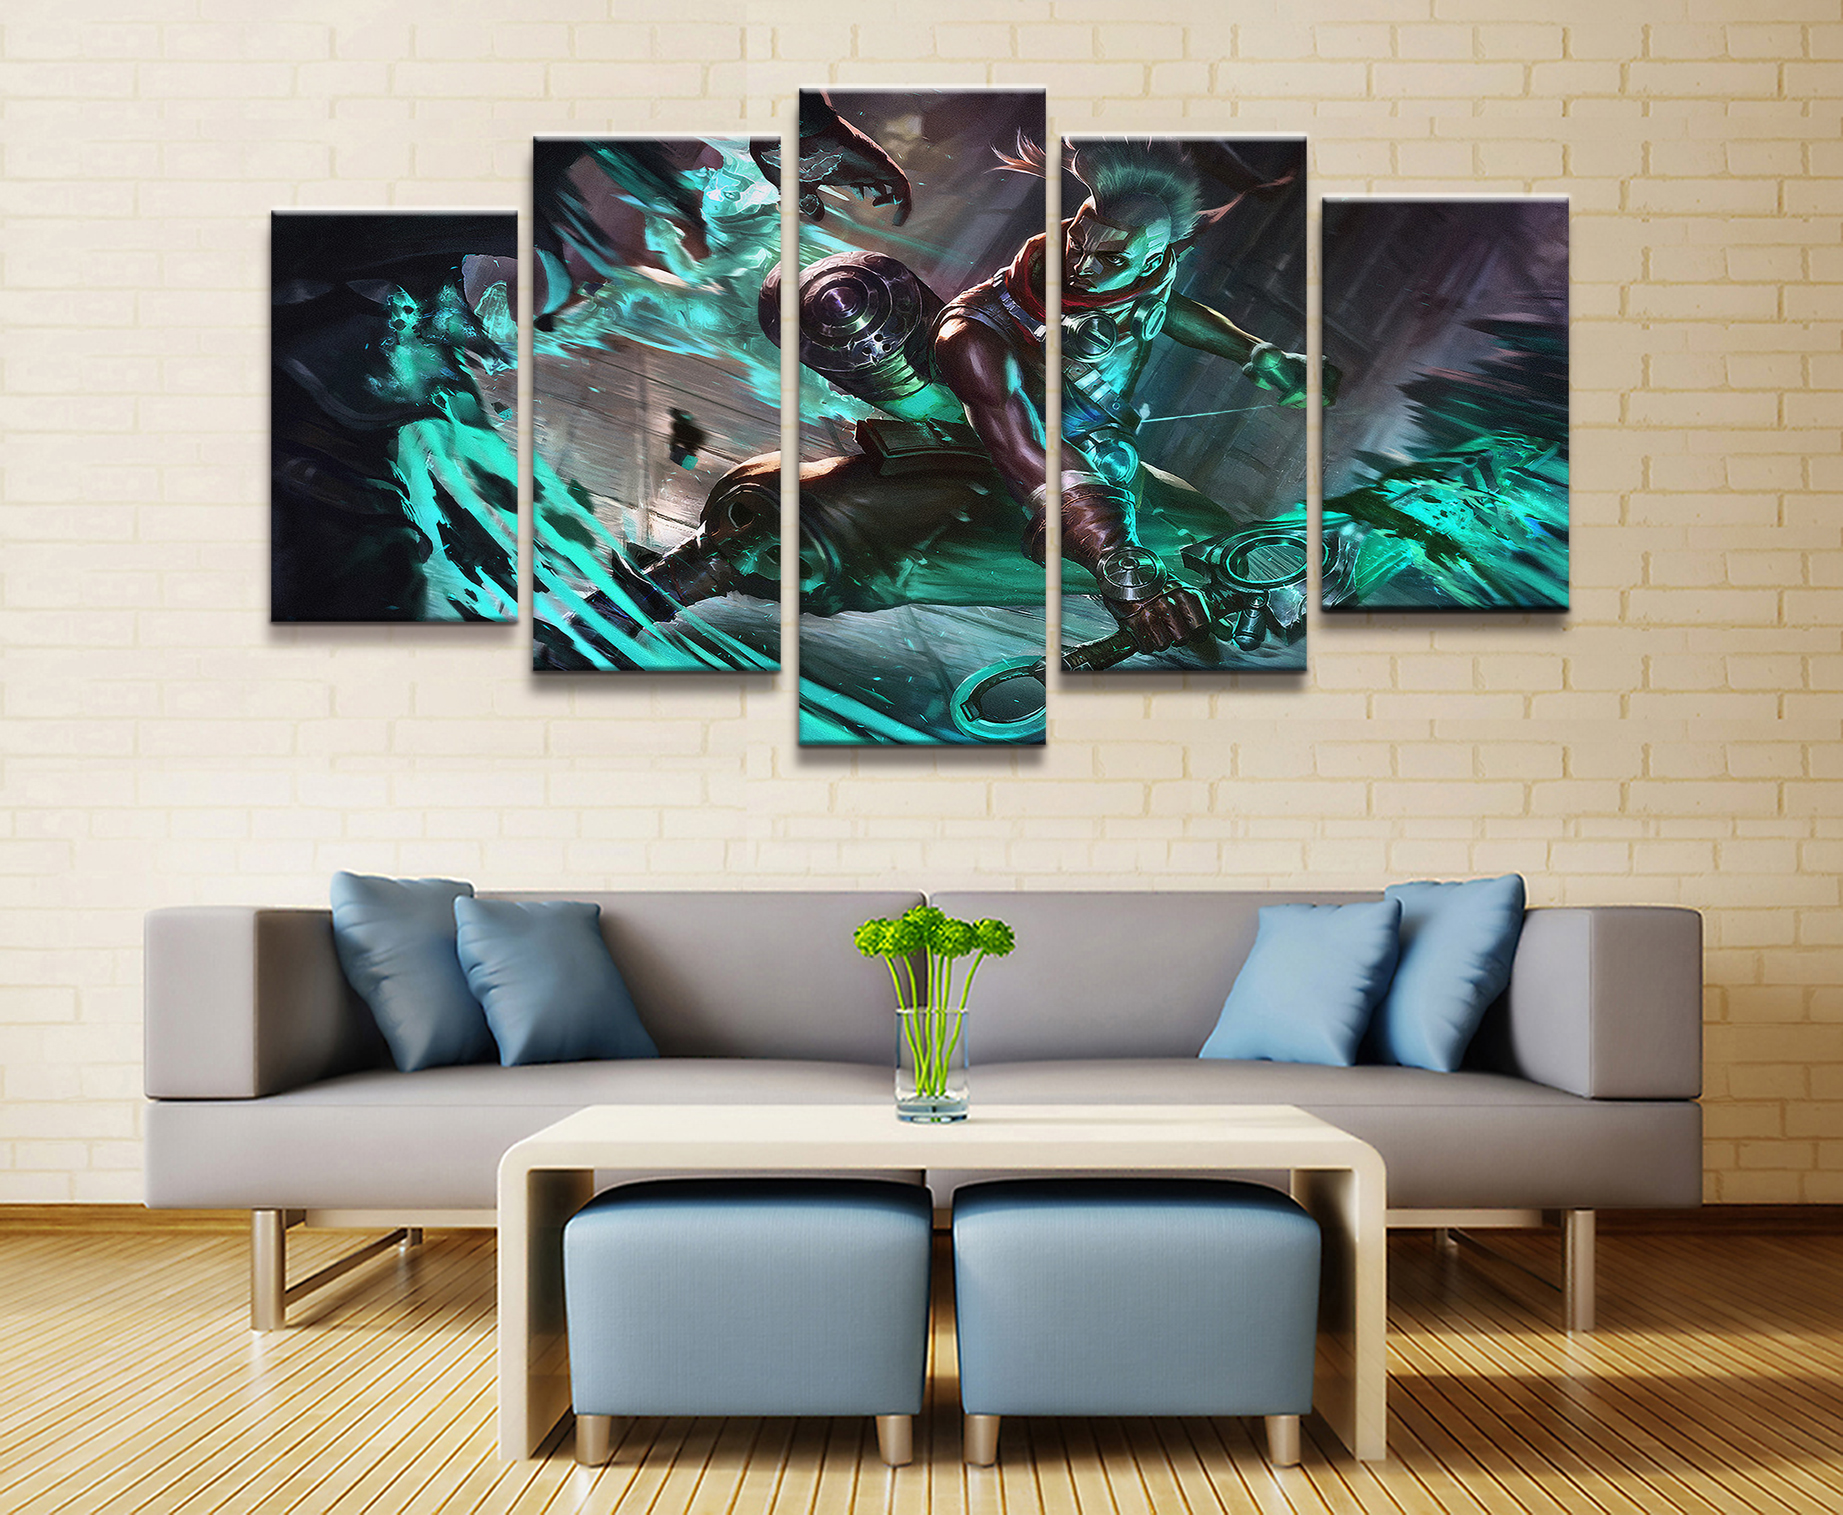 5 Panel Ekko LOL League of Legends Game Canvas Printed Painting For Living Room Wall Art Decor HD Picture Works Poster in Painting Calligraphy from Home Garden